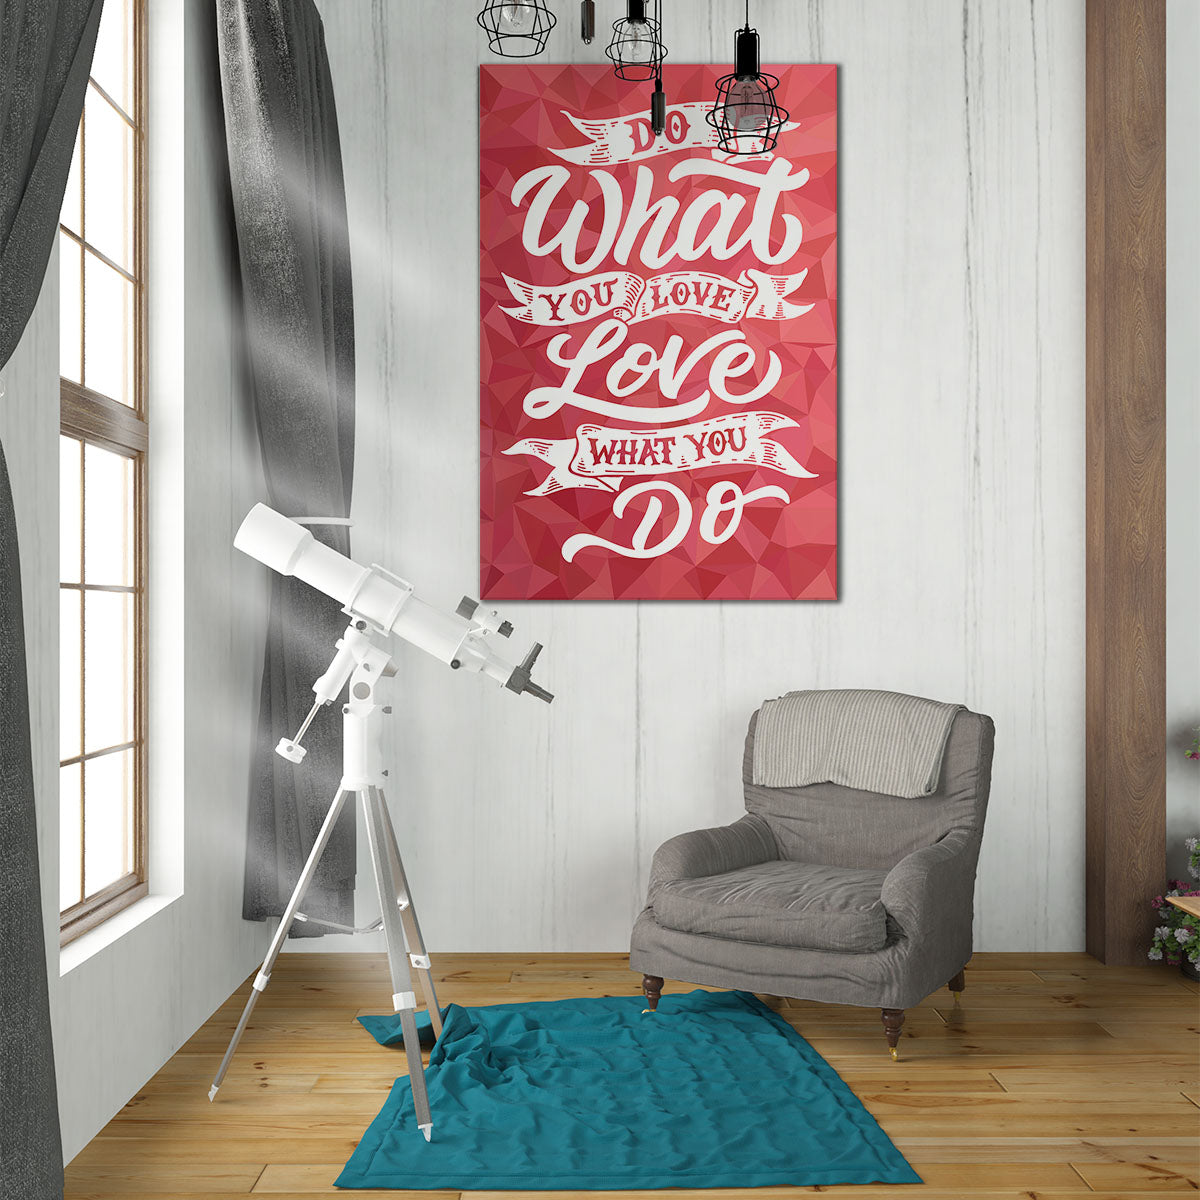 Do What You Love - Printed Canvas - Best Canvas Wall Art - Artiful.org